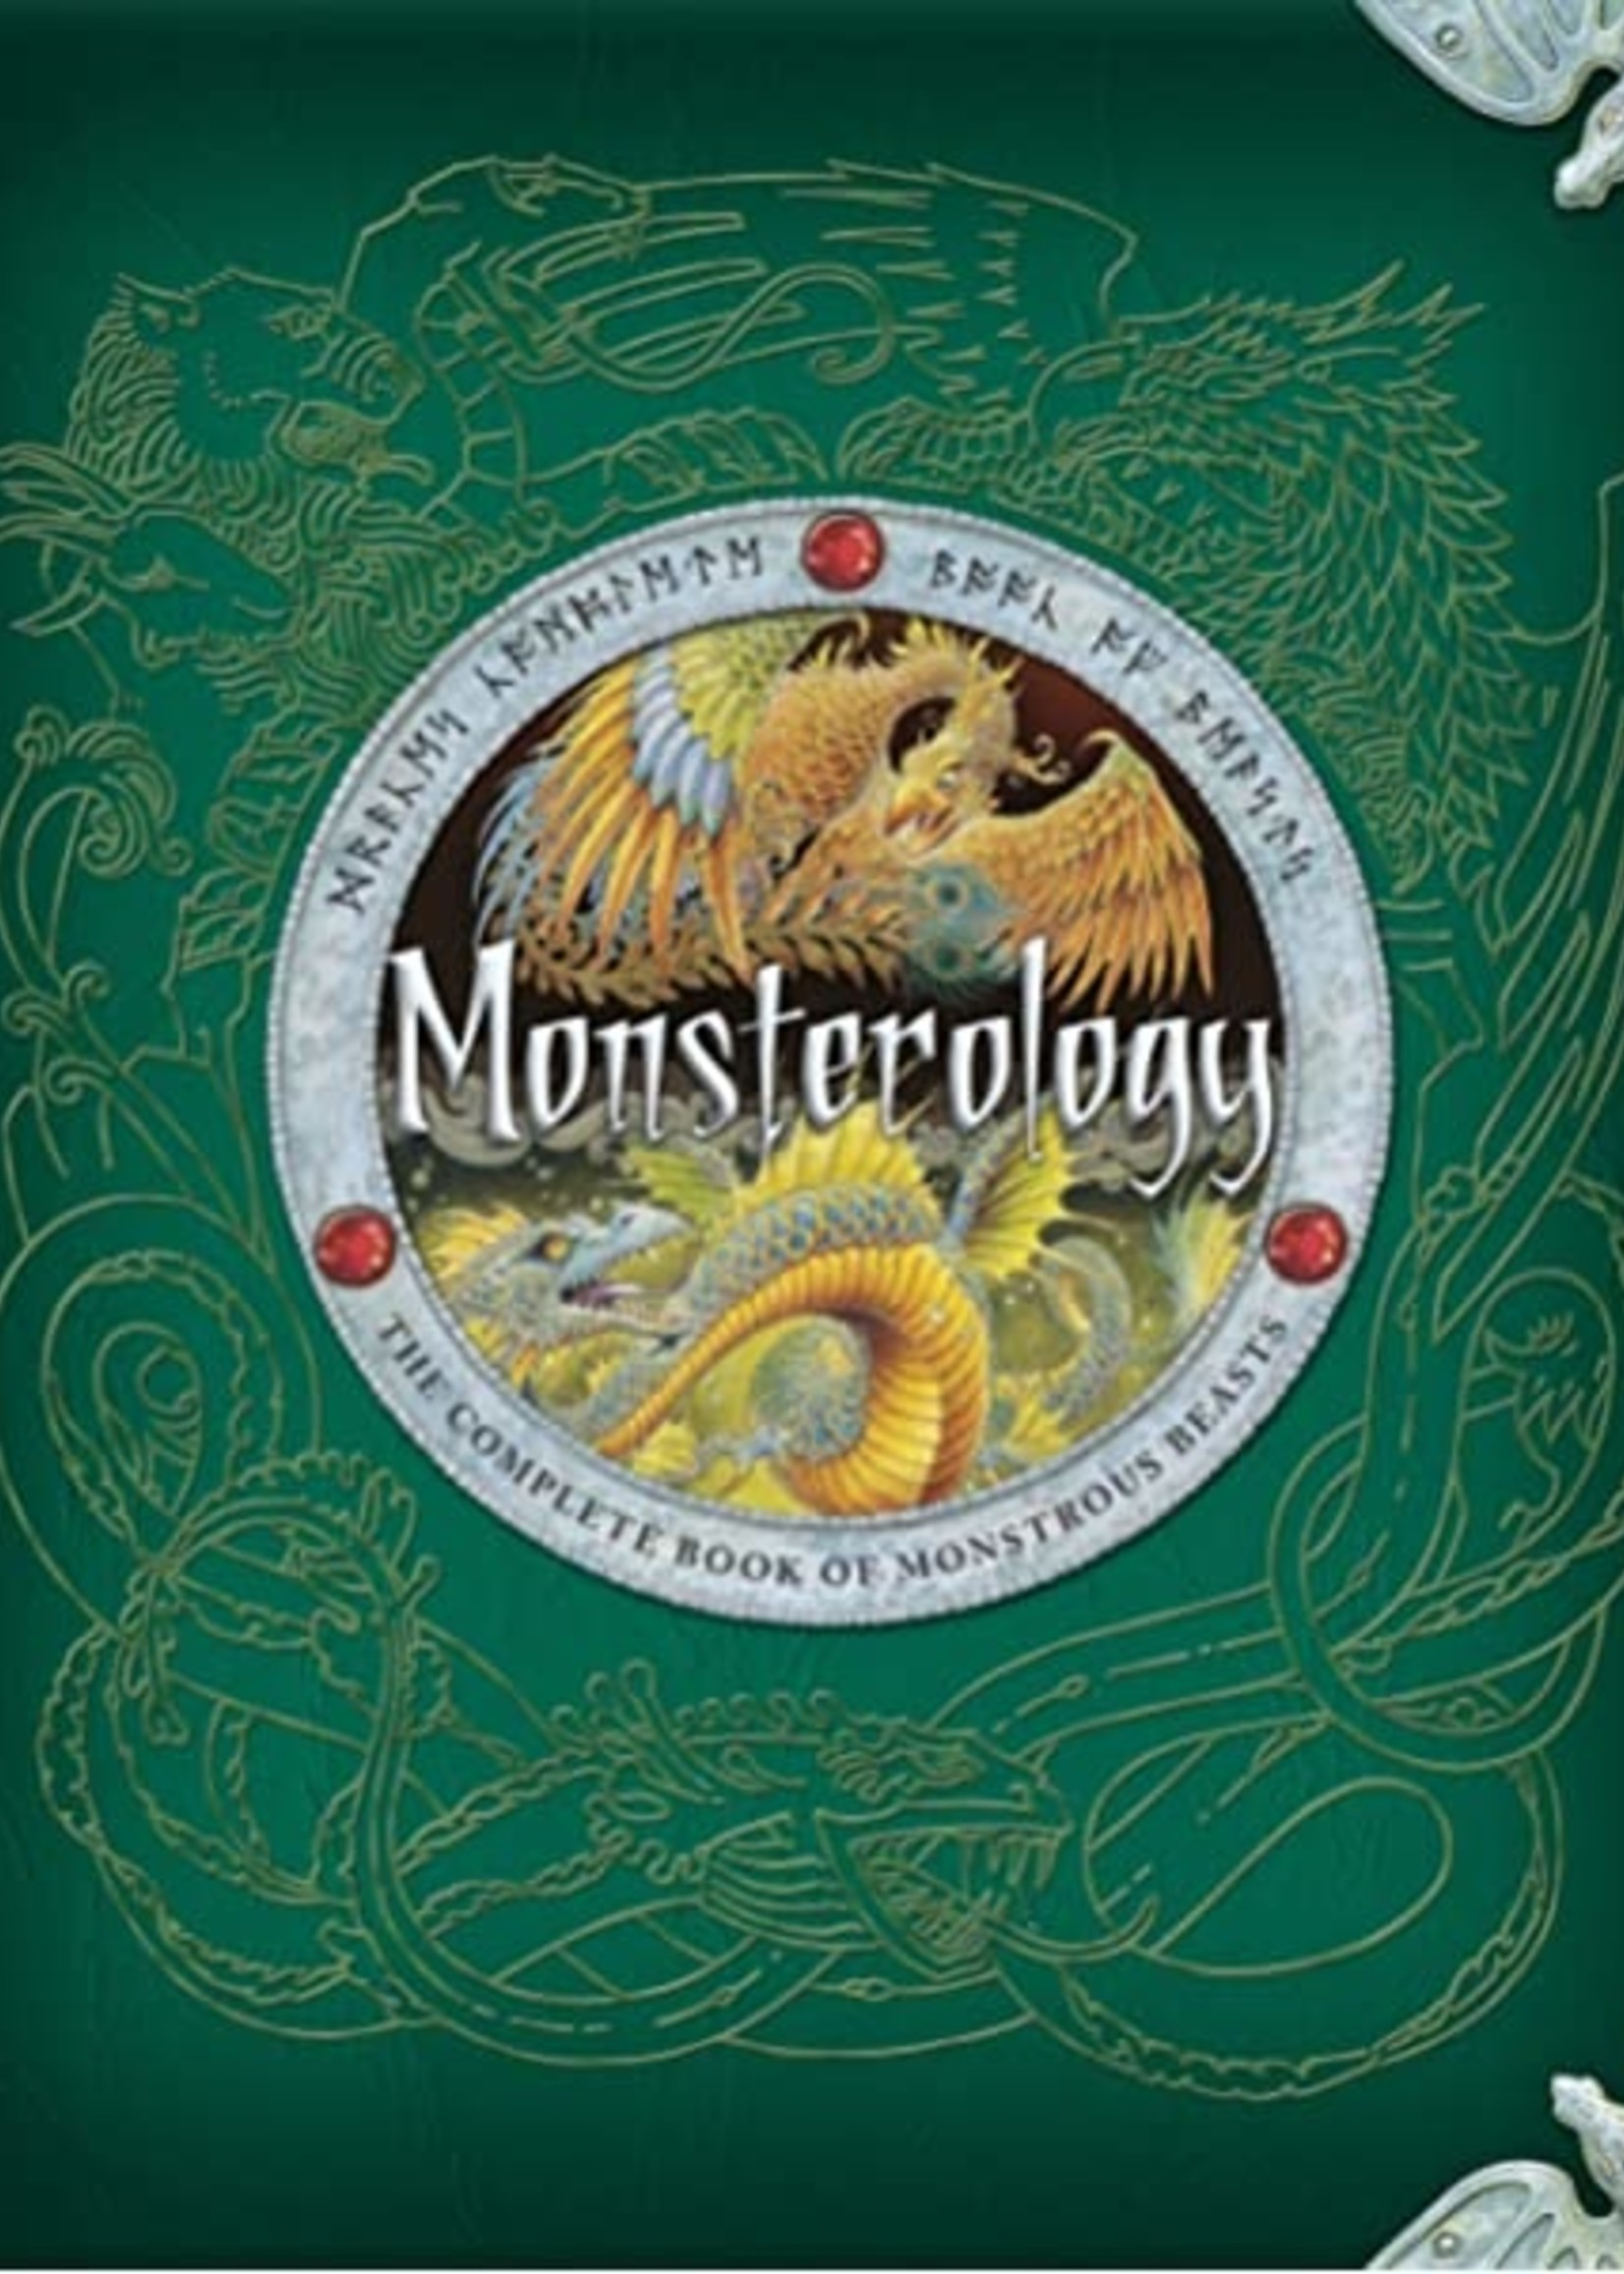 Monsterology, The Complete Book of Monstrous Beasts - Hardcover